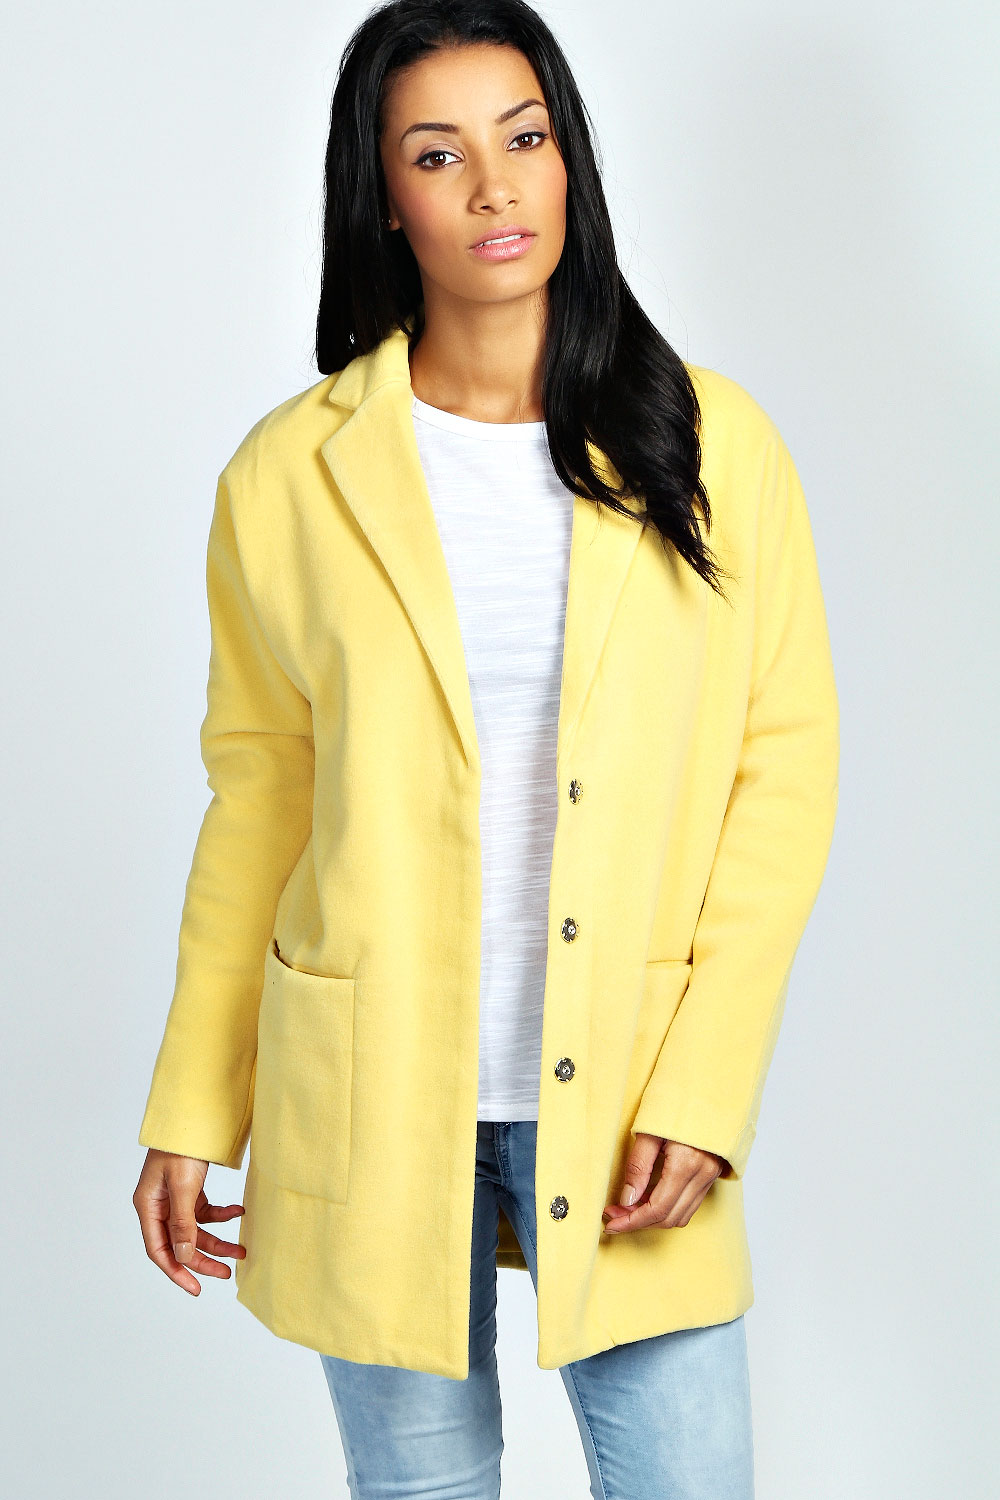 Shop Women's Coats and Jackets for Fall. Fall is sweater season! In addition to Earn Rewards Points· % Off Boots· 60% Off Outerwear· Free Shipping to StoresTypes: Dresses, Tops, Jeans, Activewear, Sweaters, Jackets, Maternity.